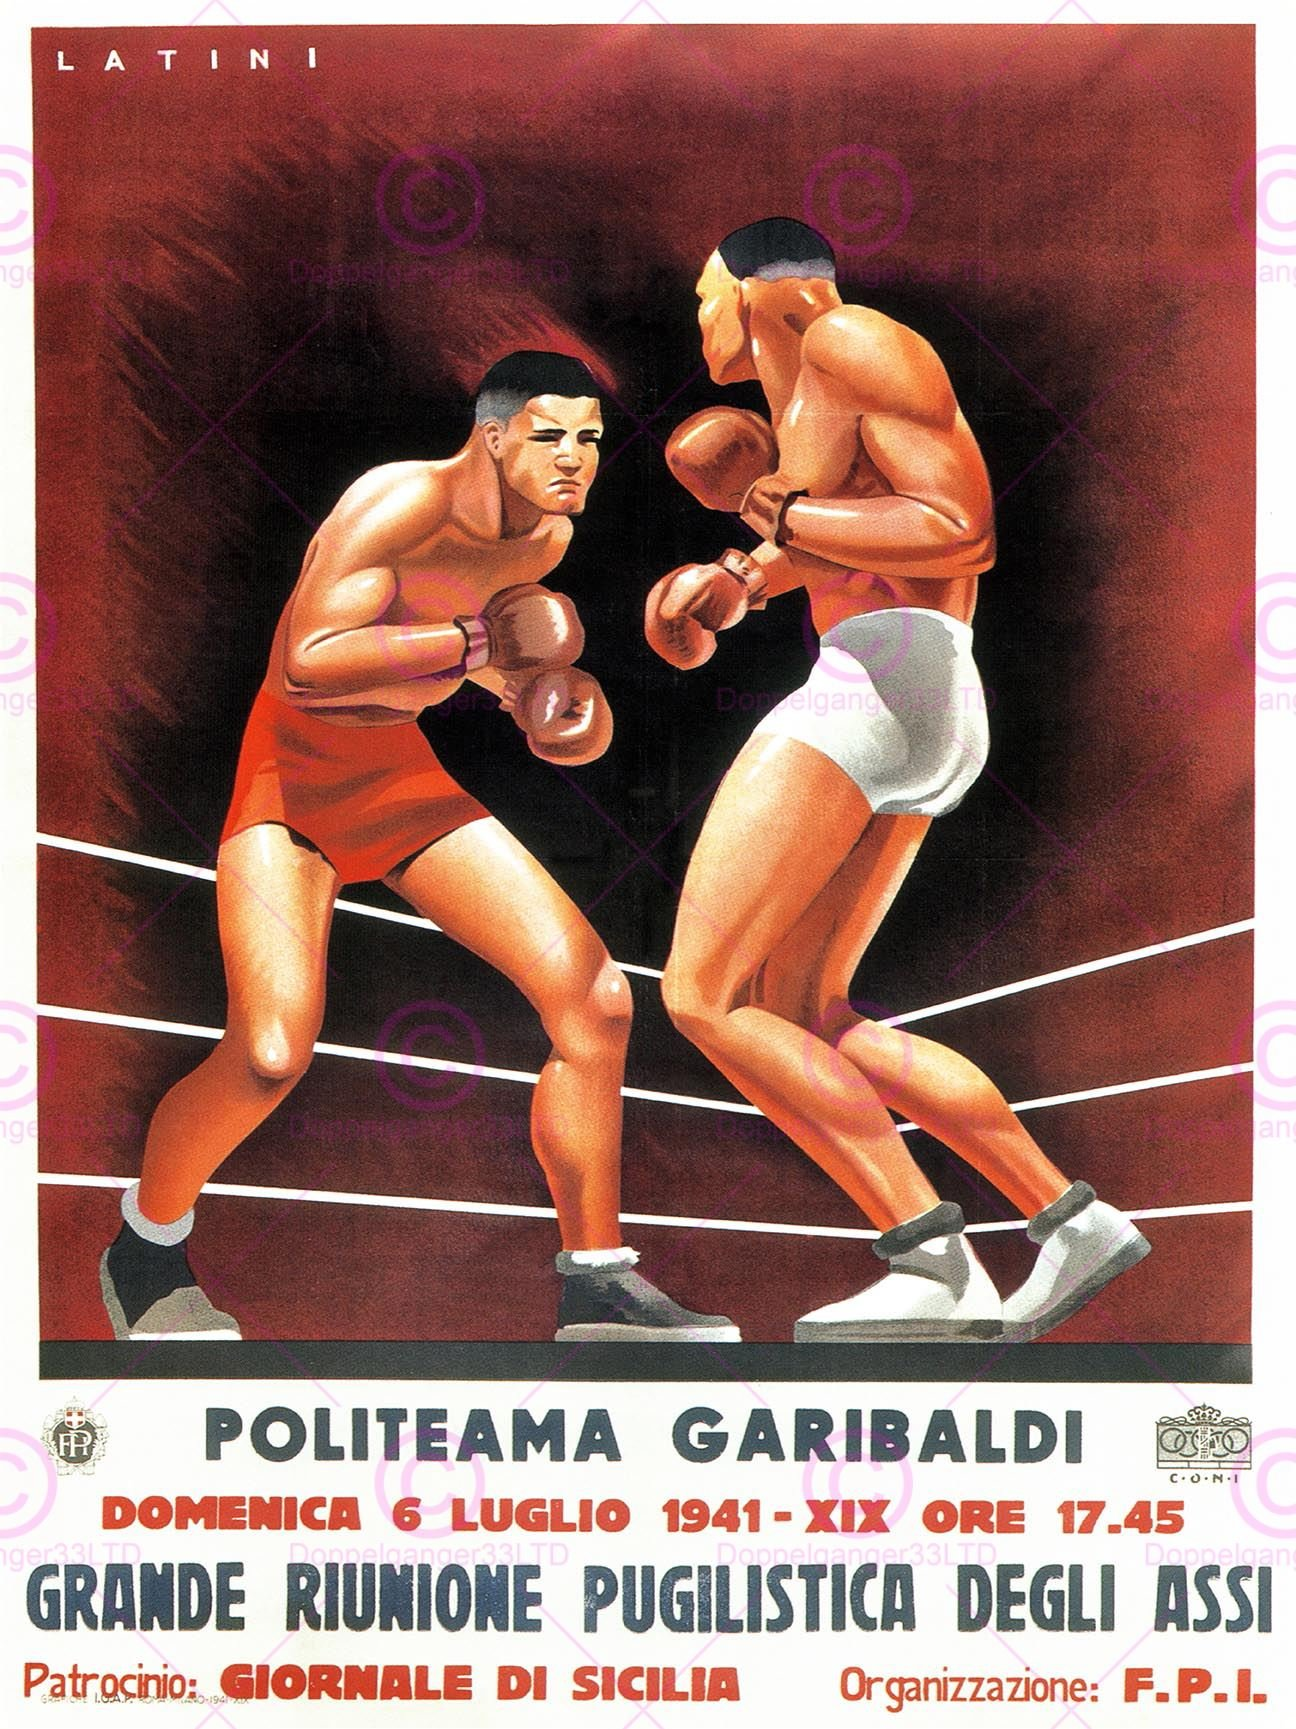 SPORT EXHIBITION BOXING SICILY ITALY VINTAGE REPRO 24x18 INCH (61x46 Cms) POSTER ART PRINT 902PYLV